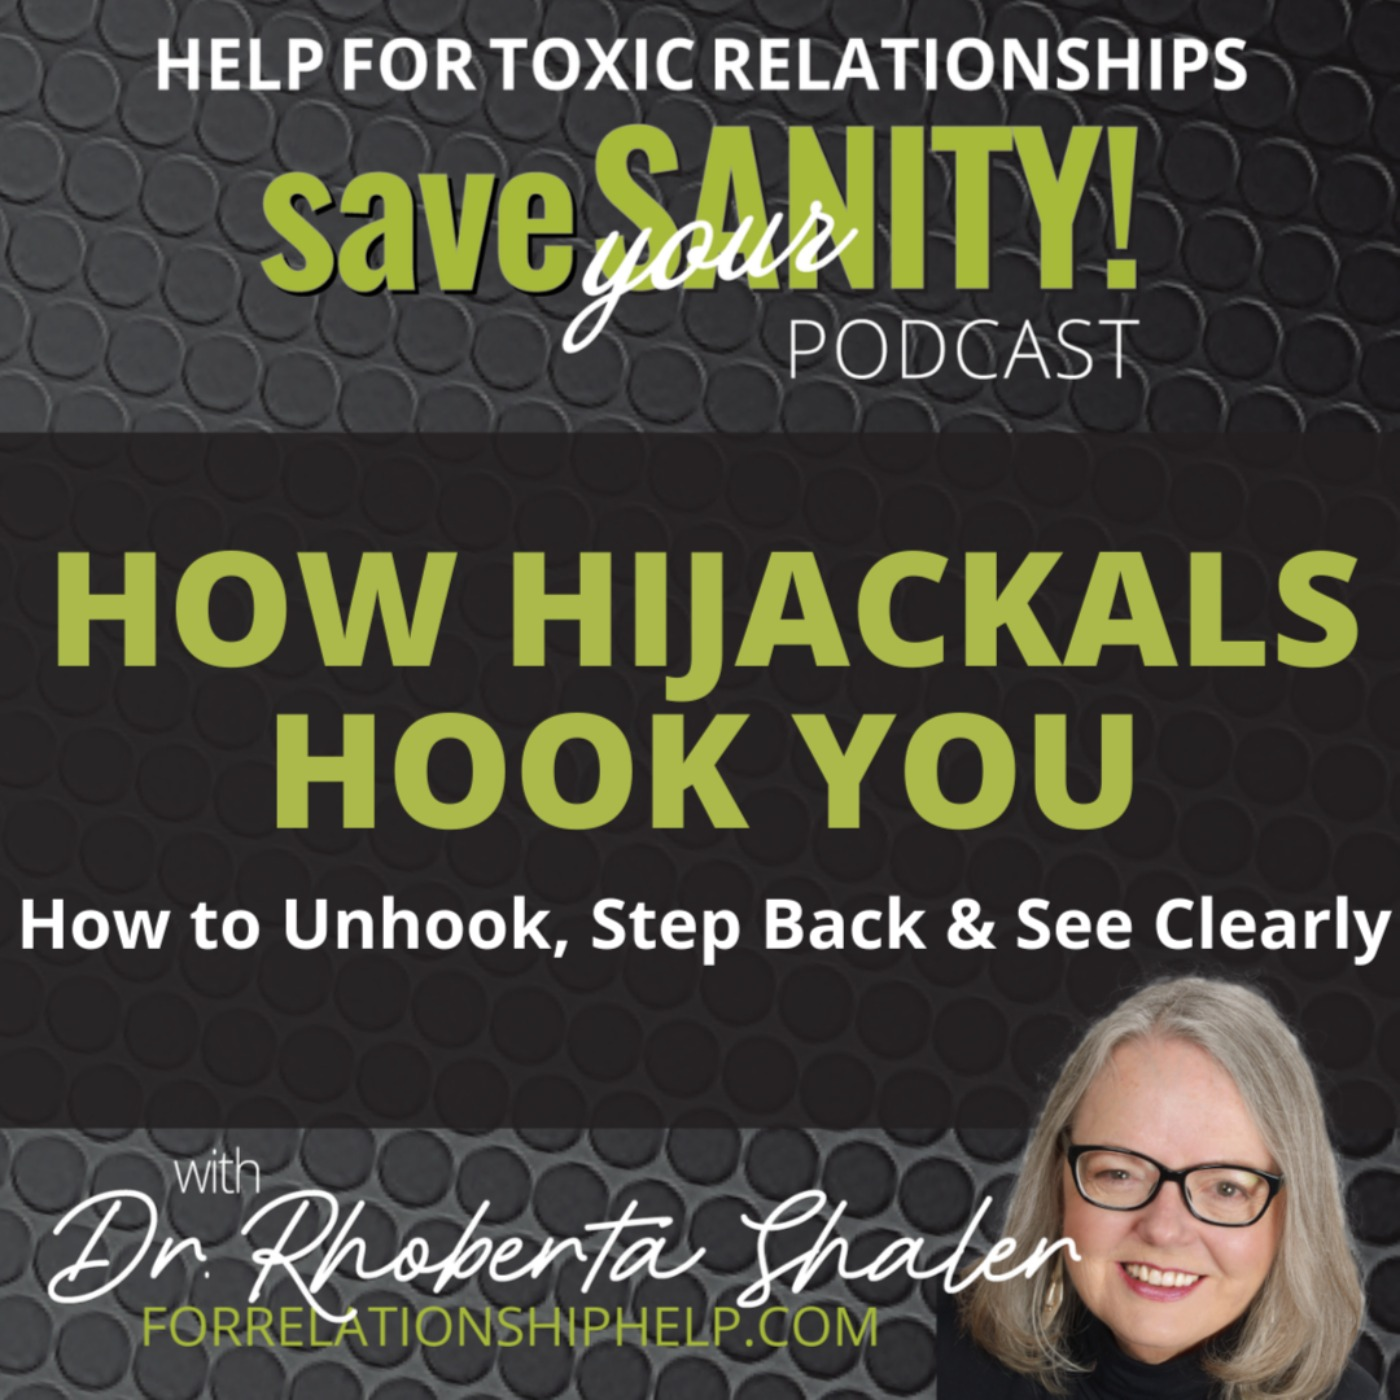 How Hijackals Hook You Into Toxic Relationships